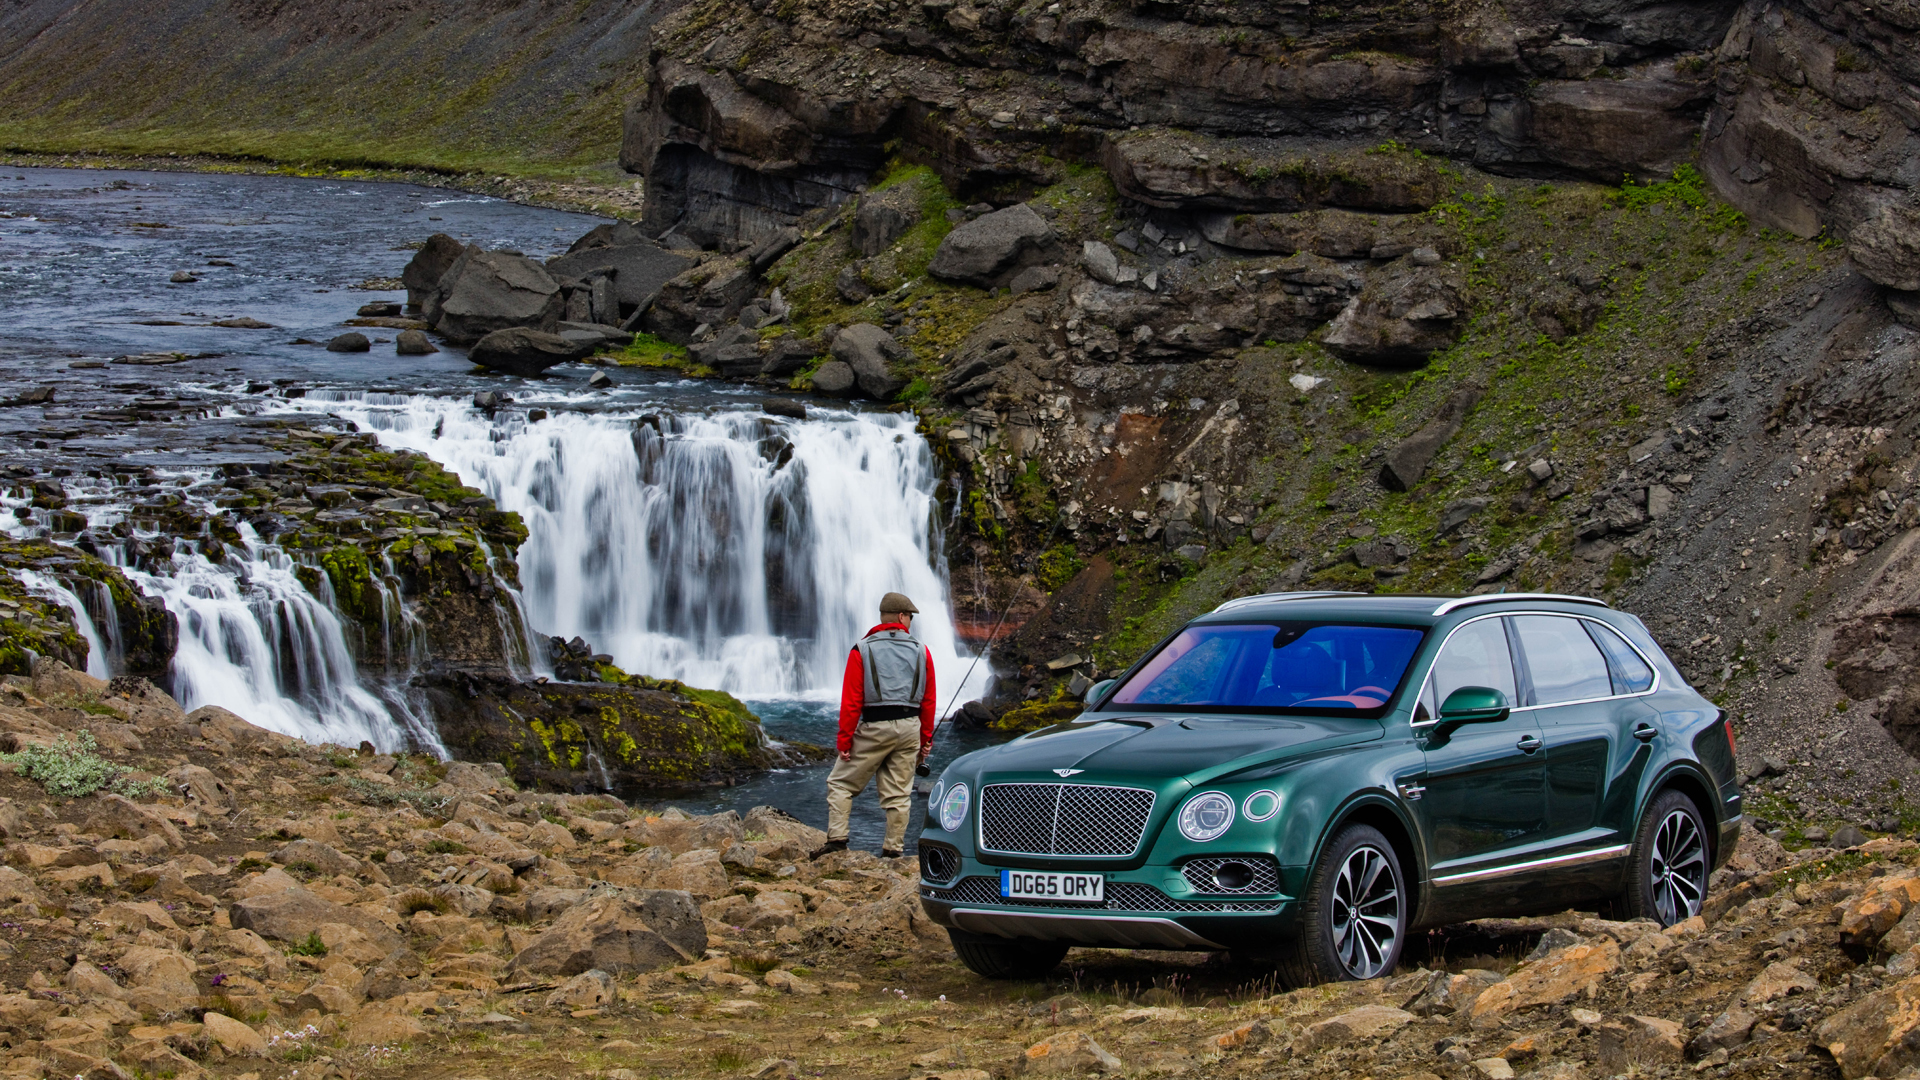 bentley-bentayga-fly-fishing-06-1